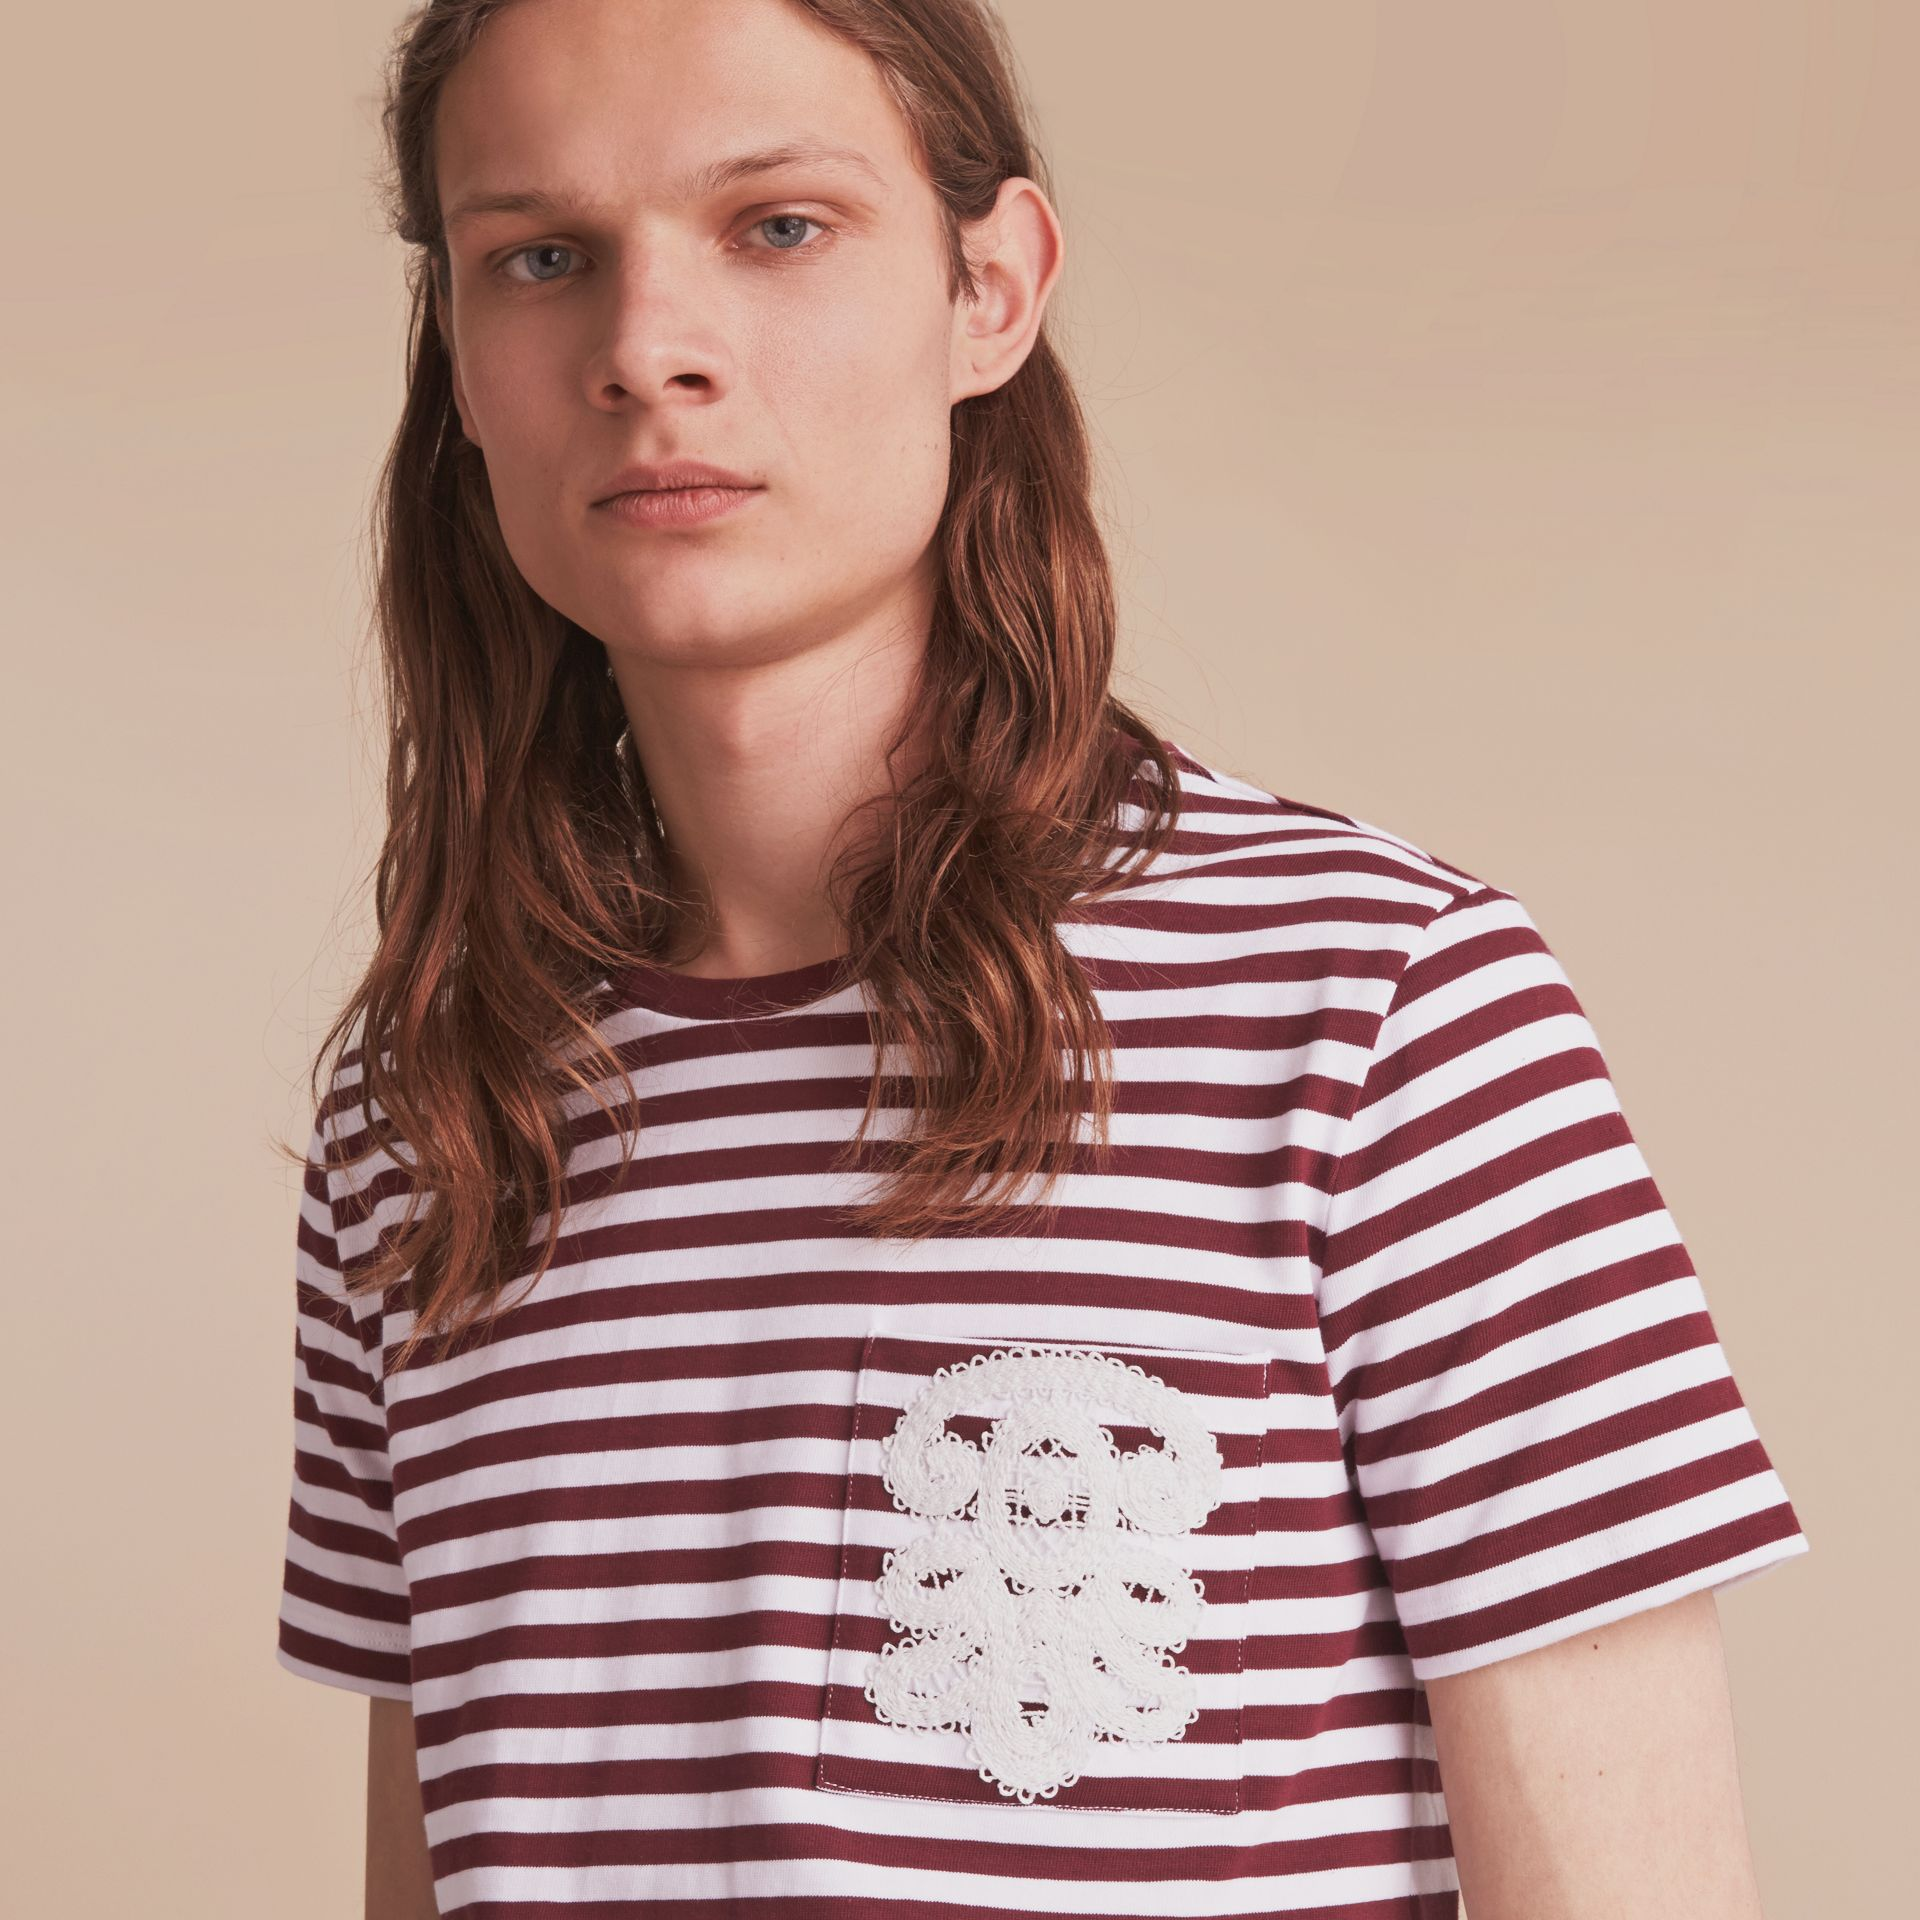 Lace Appliqué Detail Breton Stripe Cotton T-shirt in Burgundy/white - Men | Burberry Canada - gallery image 5